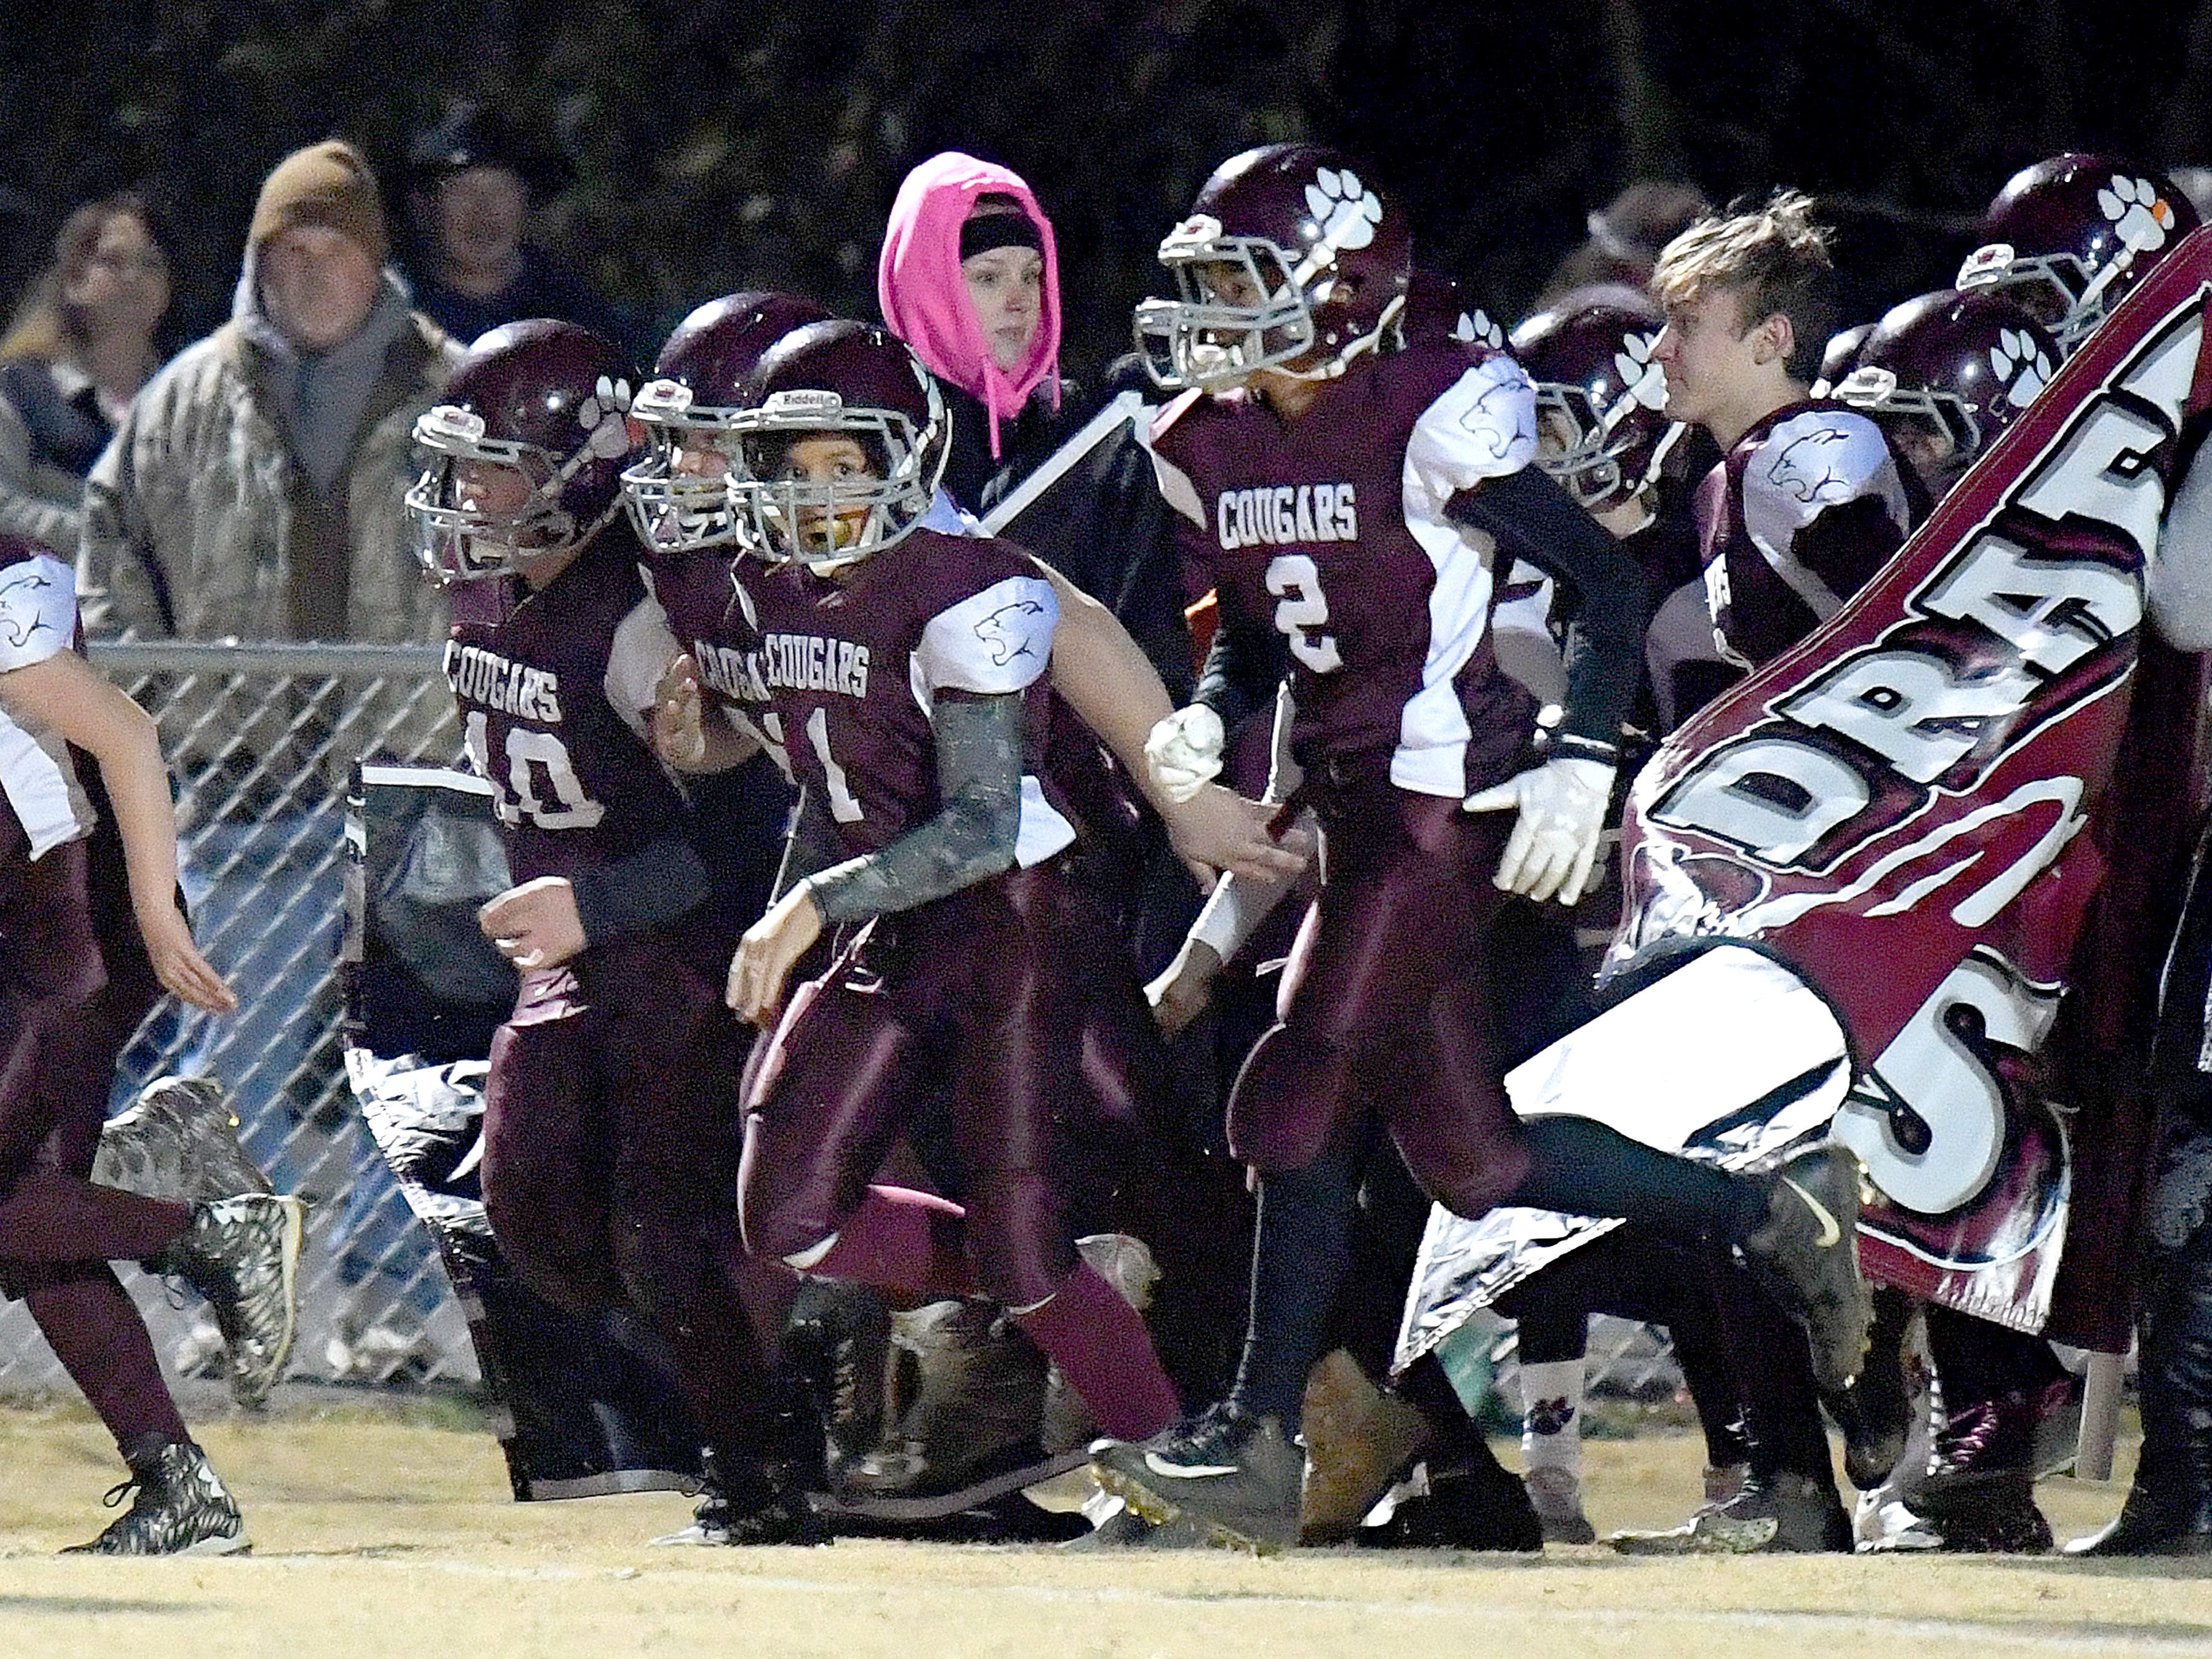 Stuarts Draft players take the field for the start of their Augusta County Quarterback Club Seniors Super Bowl in Fishersville on Sunday, Nov. 11, 2018.  RIverheads defeats Stuarts Draft, 38-6.